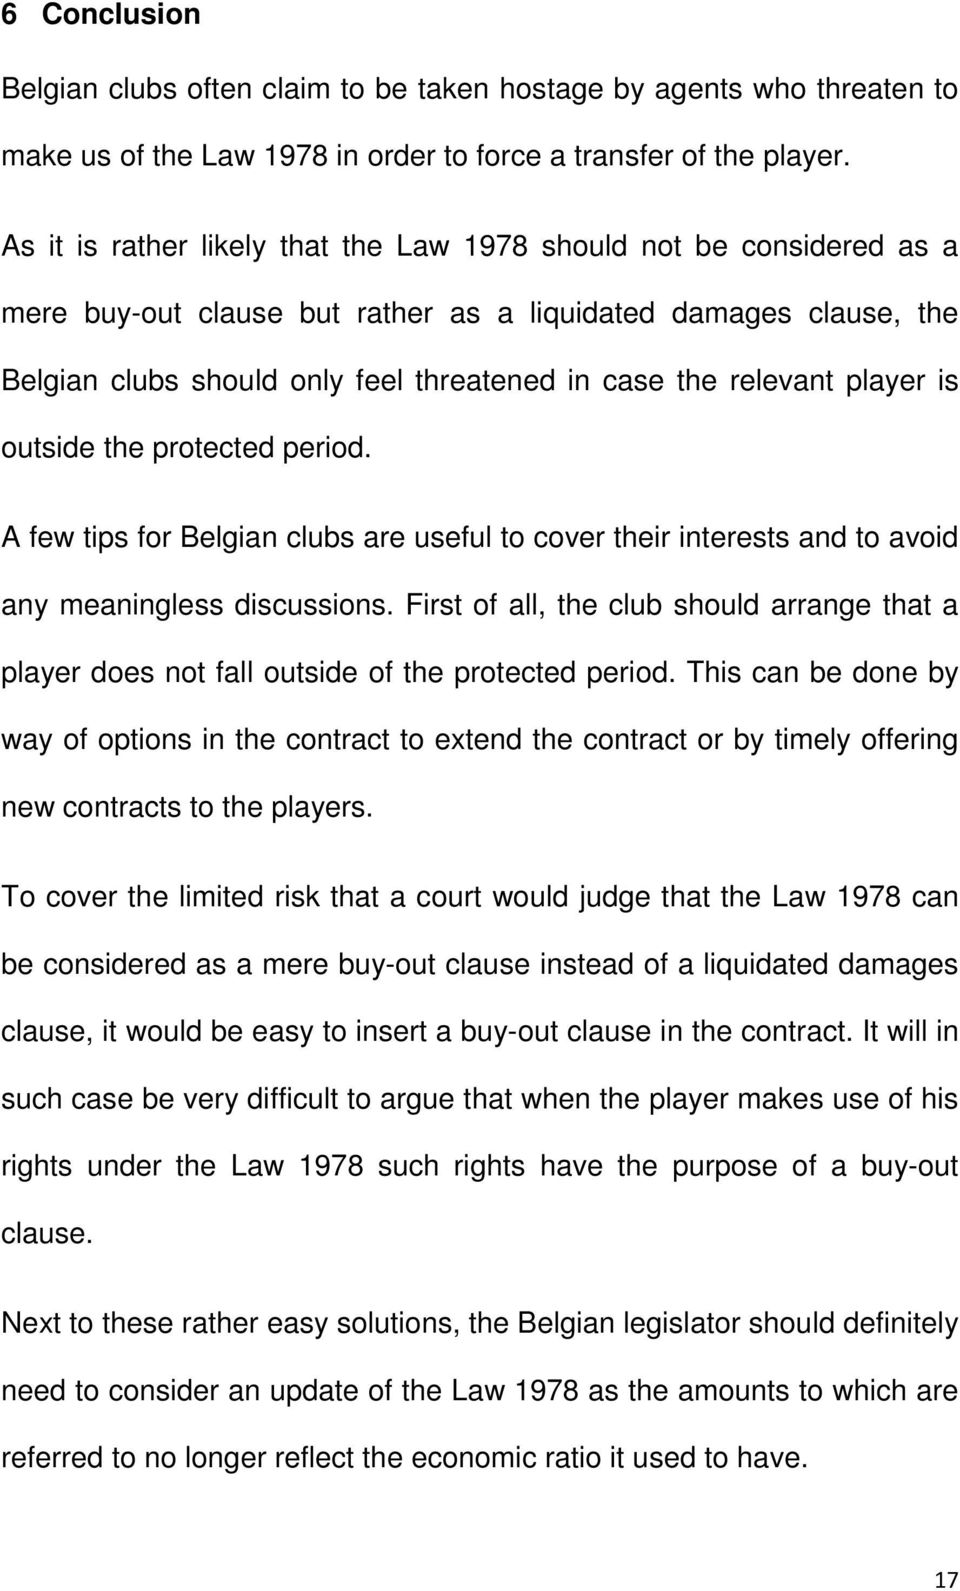 relevant player is outside the protected period. A few tips for Belgian clubs are useful to cover their interests and to avoid any meaningless discussions.